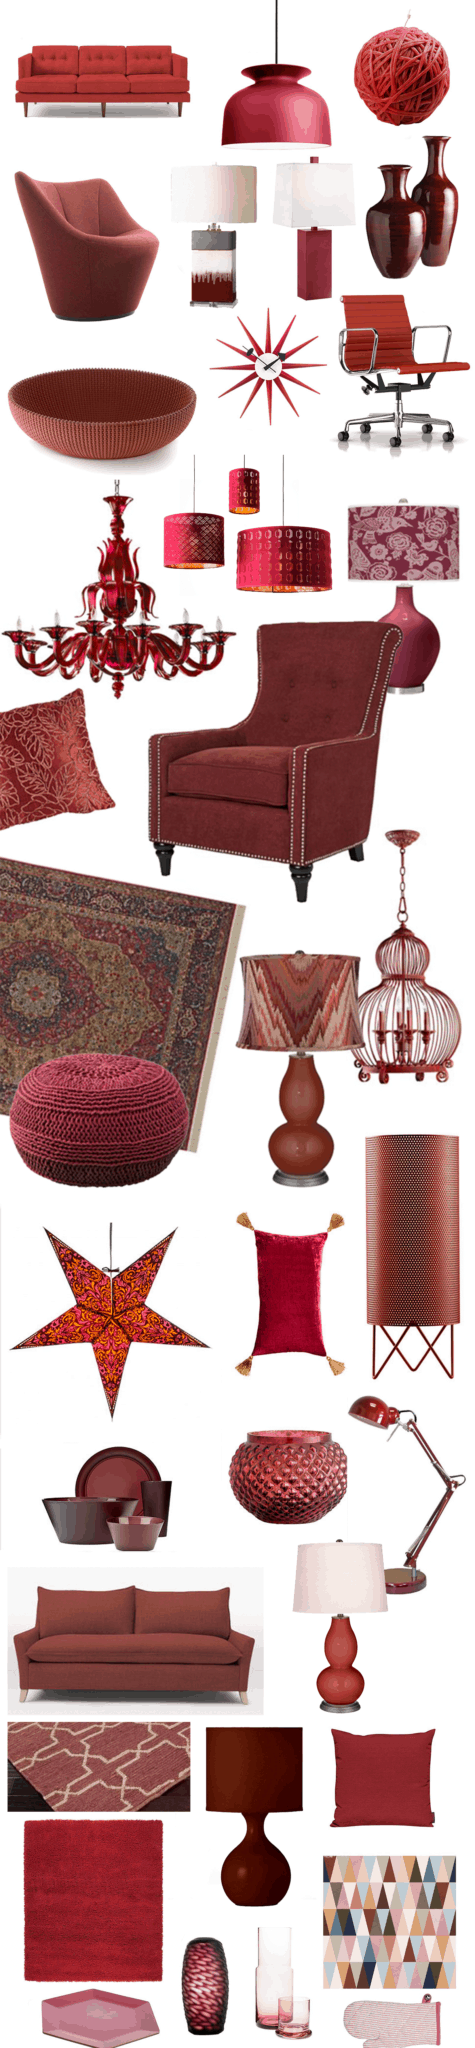 cor-marsala-decor-4